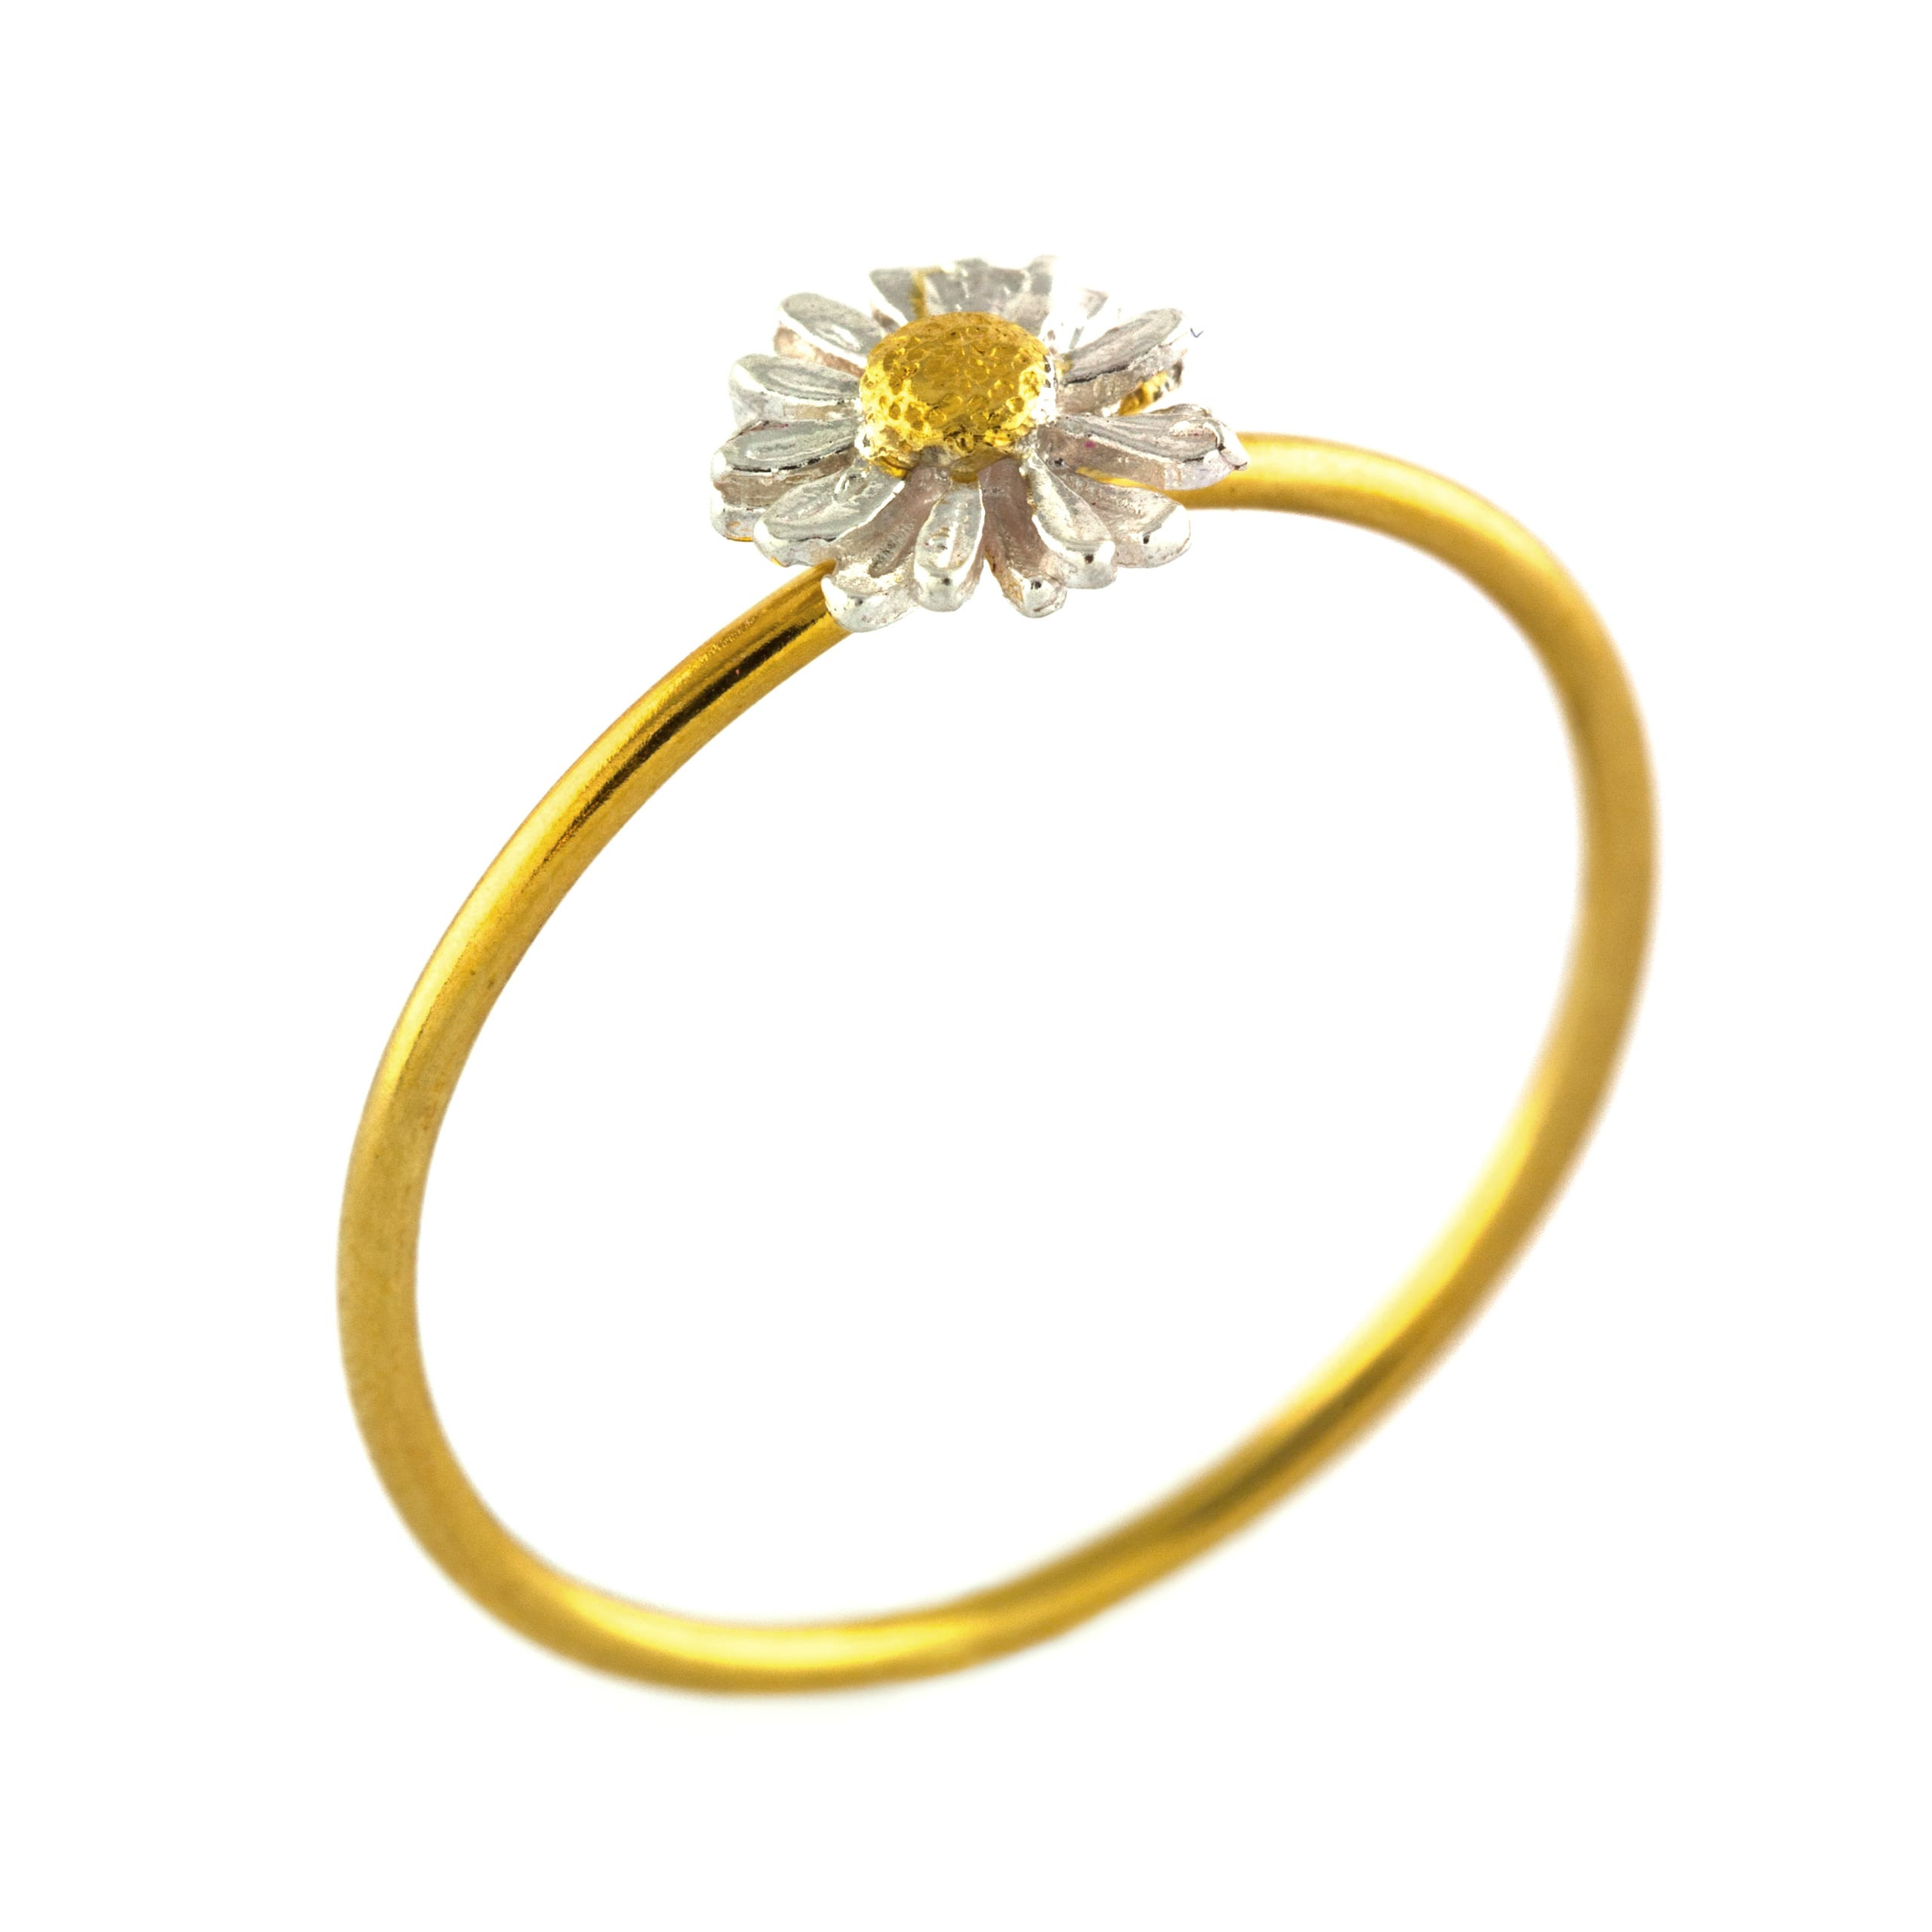 Tiny Daisy Ring Throughout Best And Newest Classic Daisy Flower Band Rings (View 22 of 25)